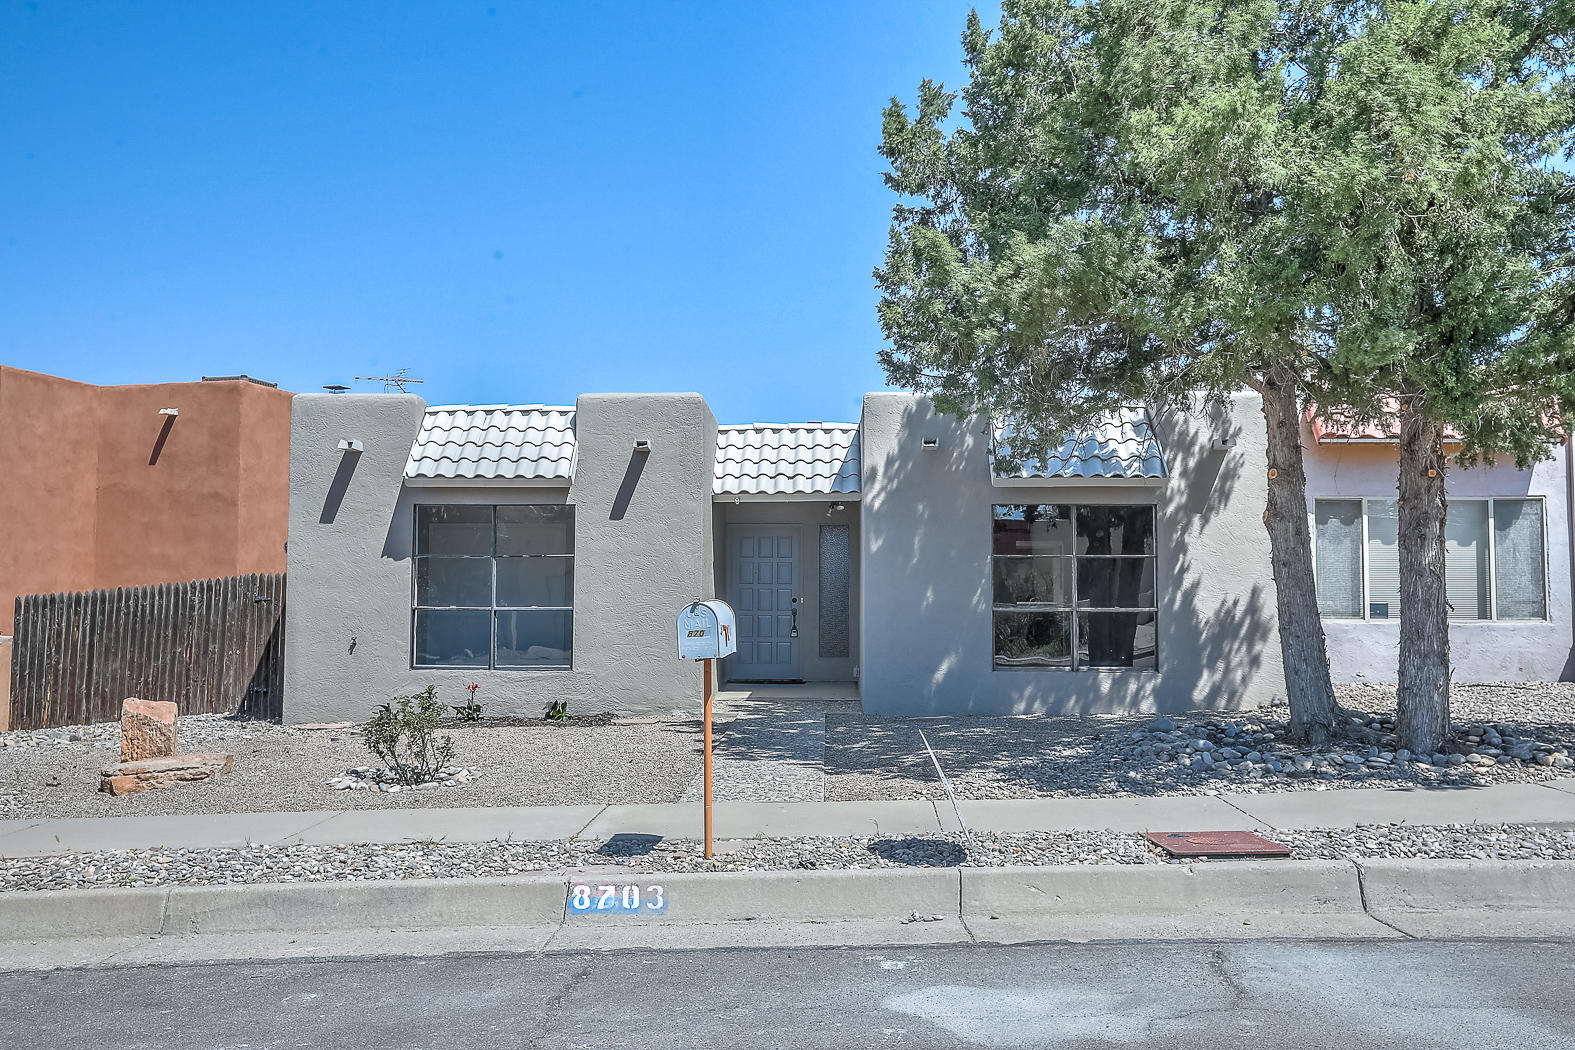 Welcome home to this newly remodeled one story in the coveted NE Heights neighborhood. This gorgeous home boasts newly redone roof, new flooring, updated bathrooms. No expense spared. Hurry this one one last!